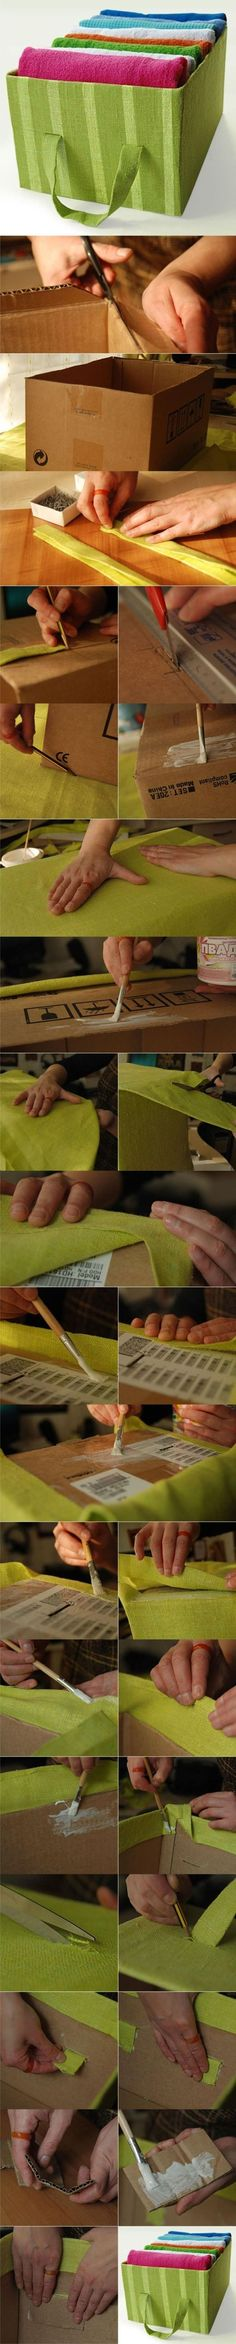 Make your own organizer box - cover ordinary cardboard box with fabric. Picture tutorial !! CooLio !